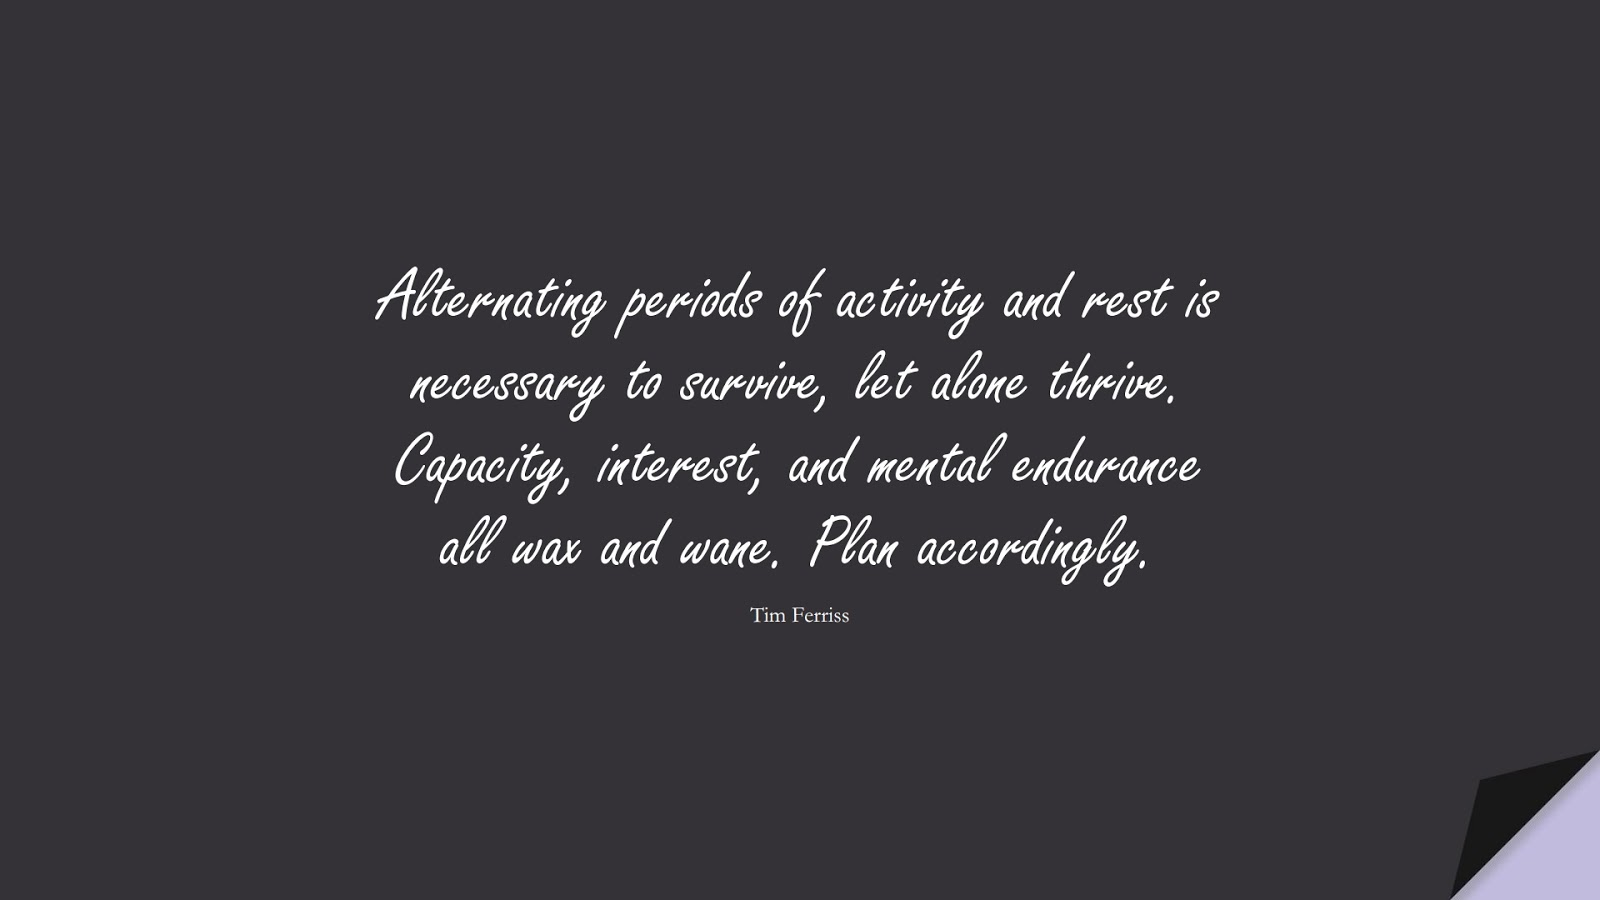 Alternating periods of activity and rest is necessary to survive, let alone thrive. Capacity, interest, and mental endurance all wax and wane. Plan accordingly. (Tim Ferriss);  #TimFerrissQuotes